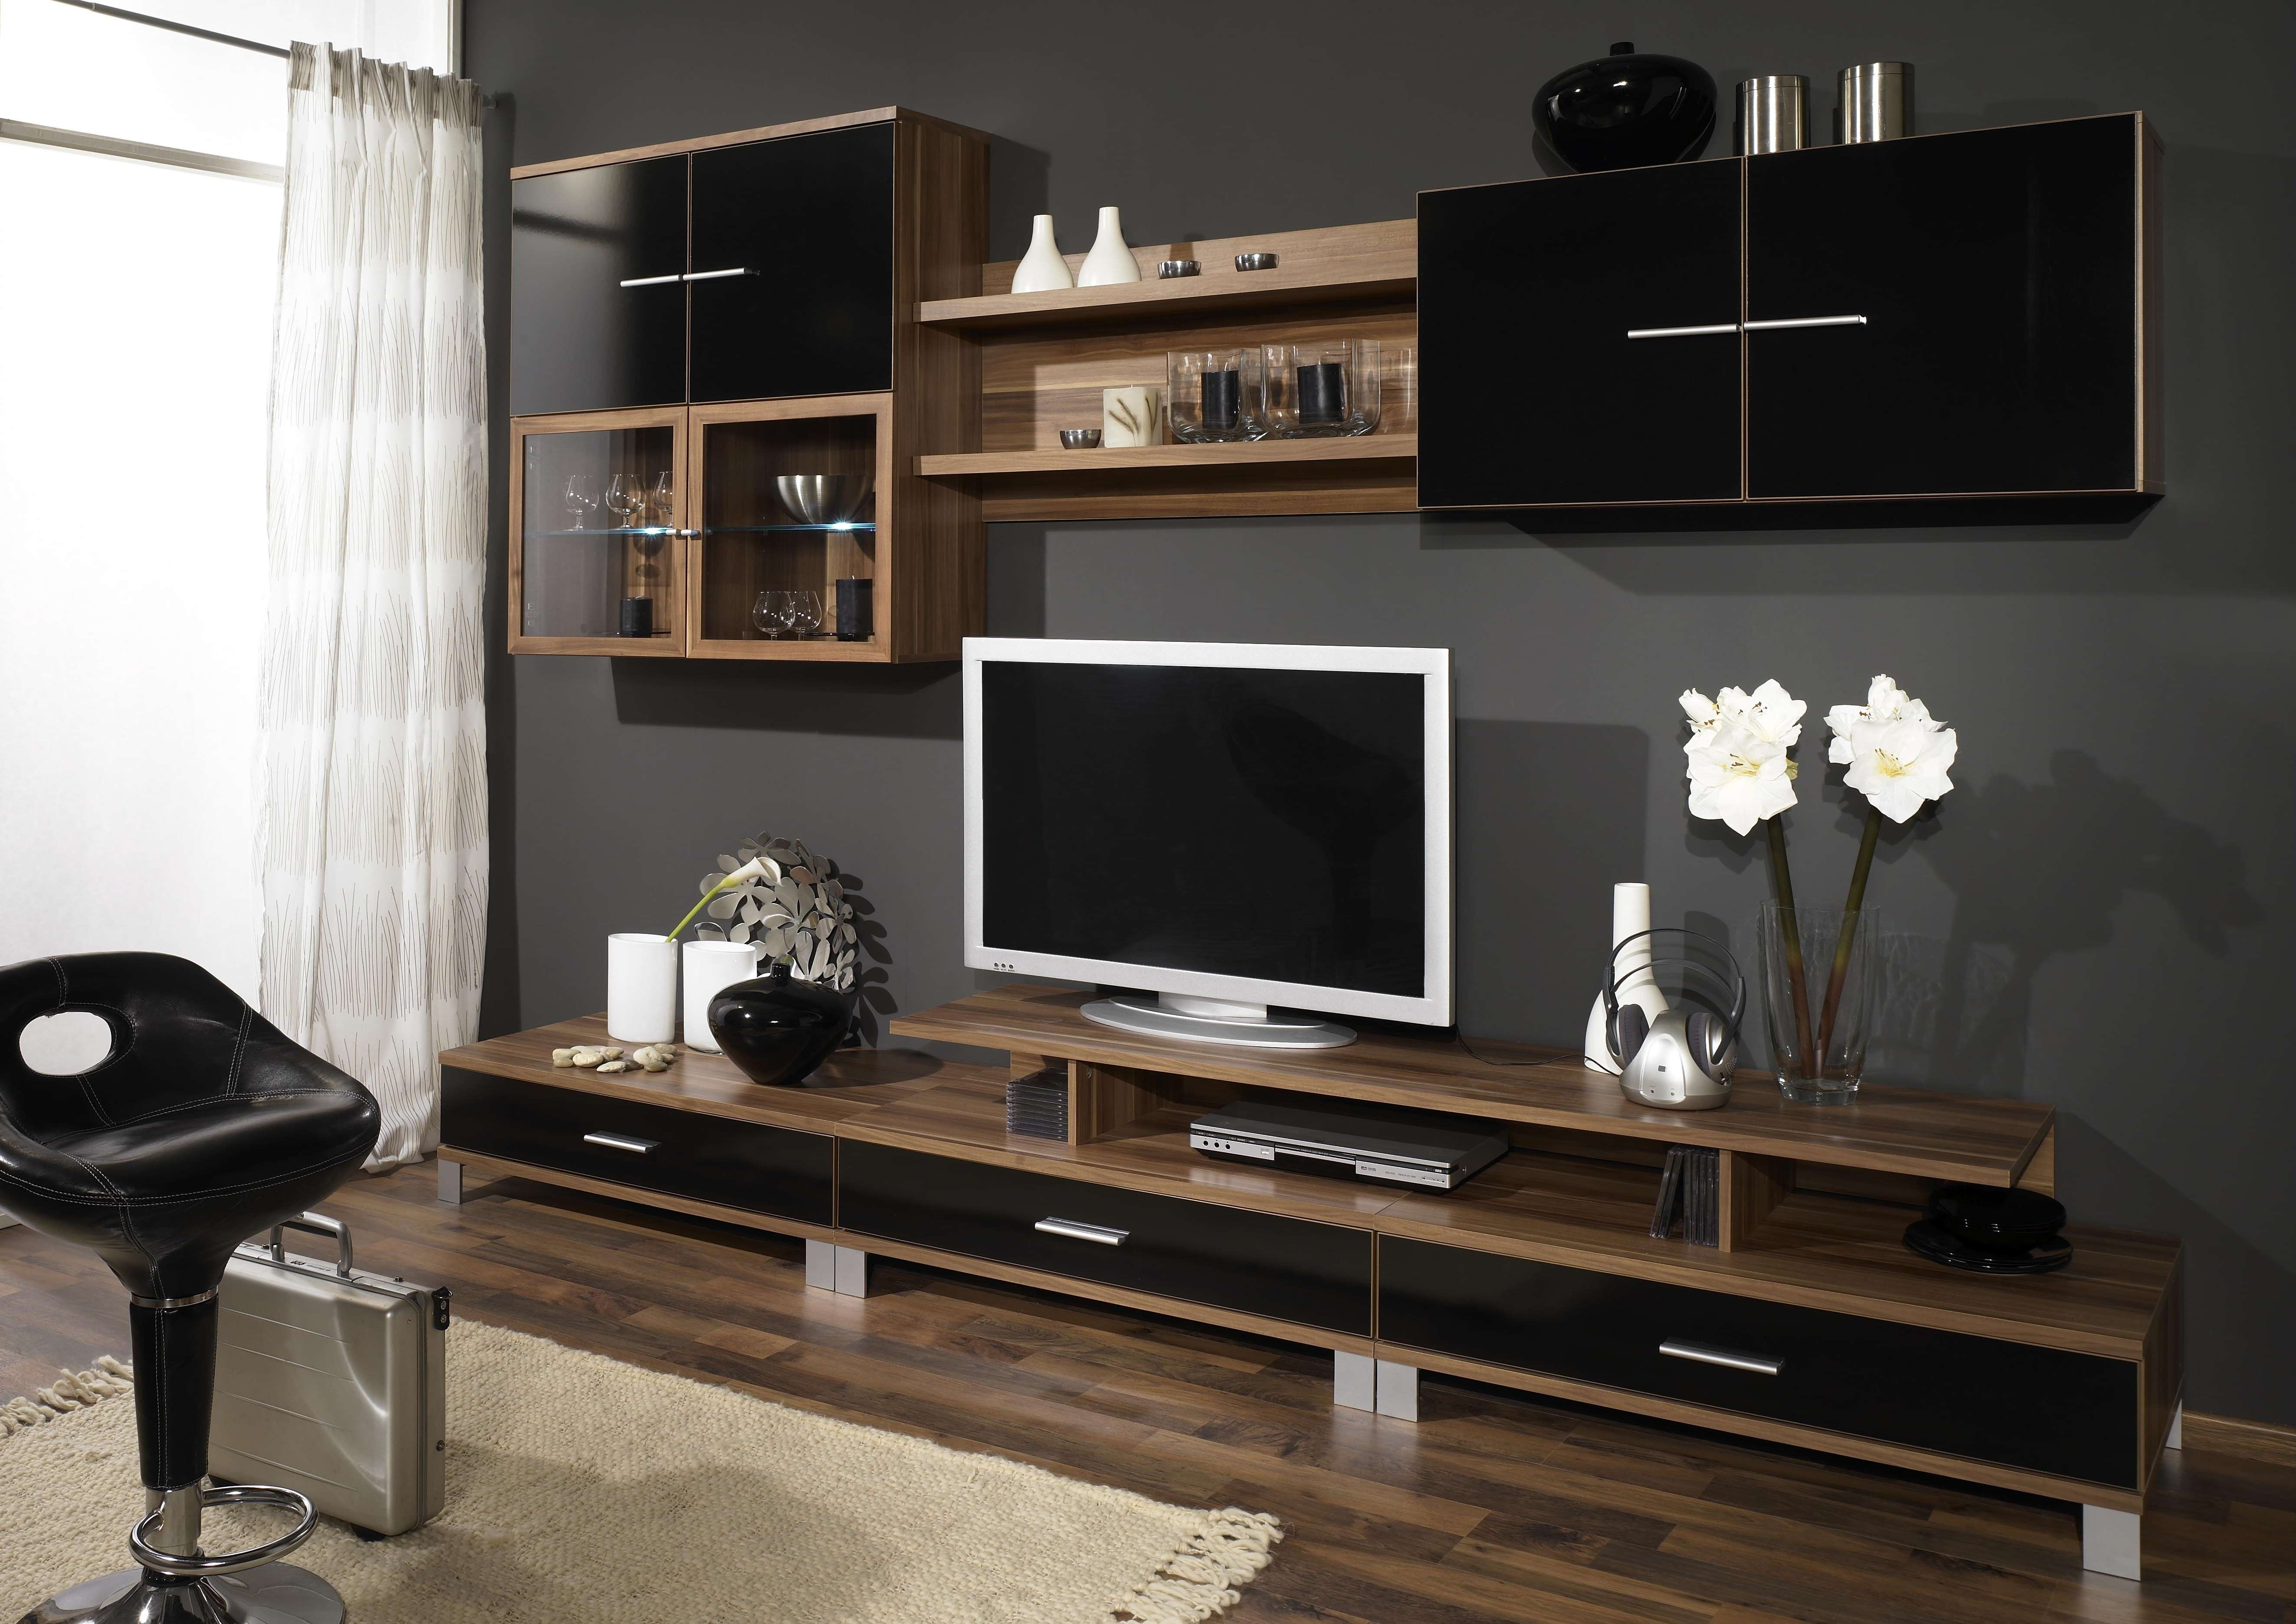 Interior Furniture Cabinets Wall Units Tv Wood Brown – Dining With Tv Cabinets And Wall Units (View 10 of 20)